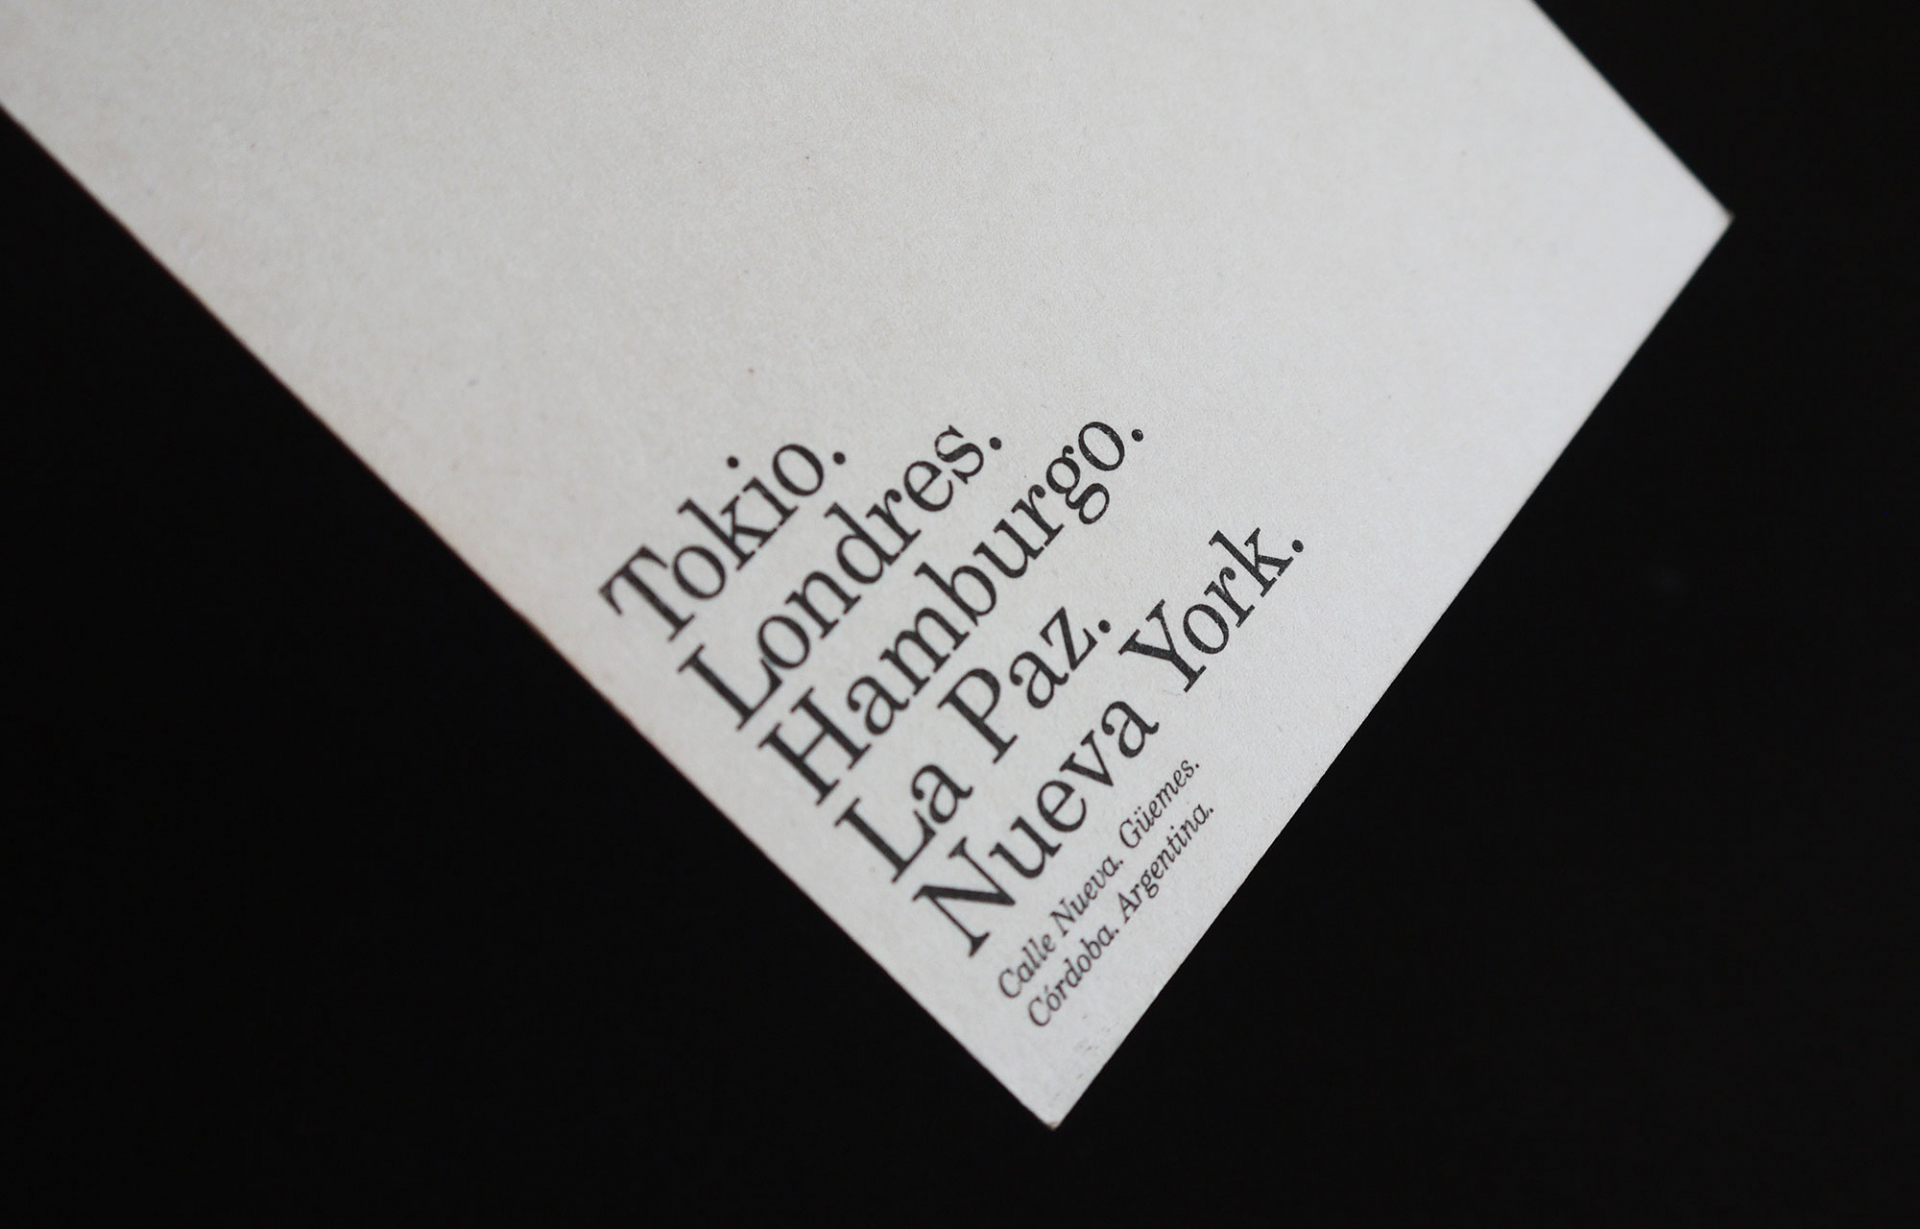 HORACIO LORENTE — Art Director Barrio ∎